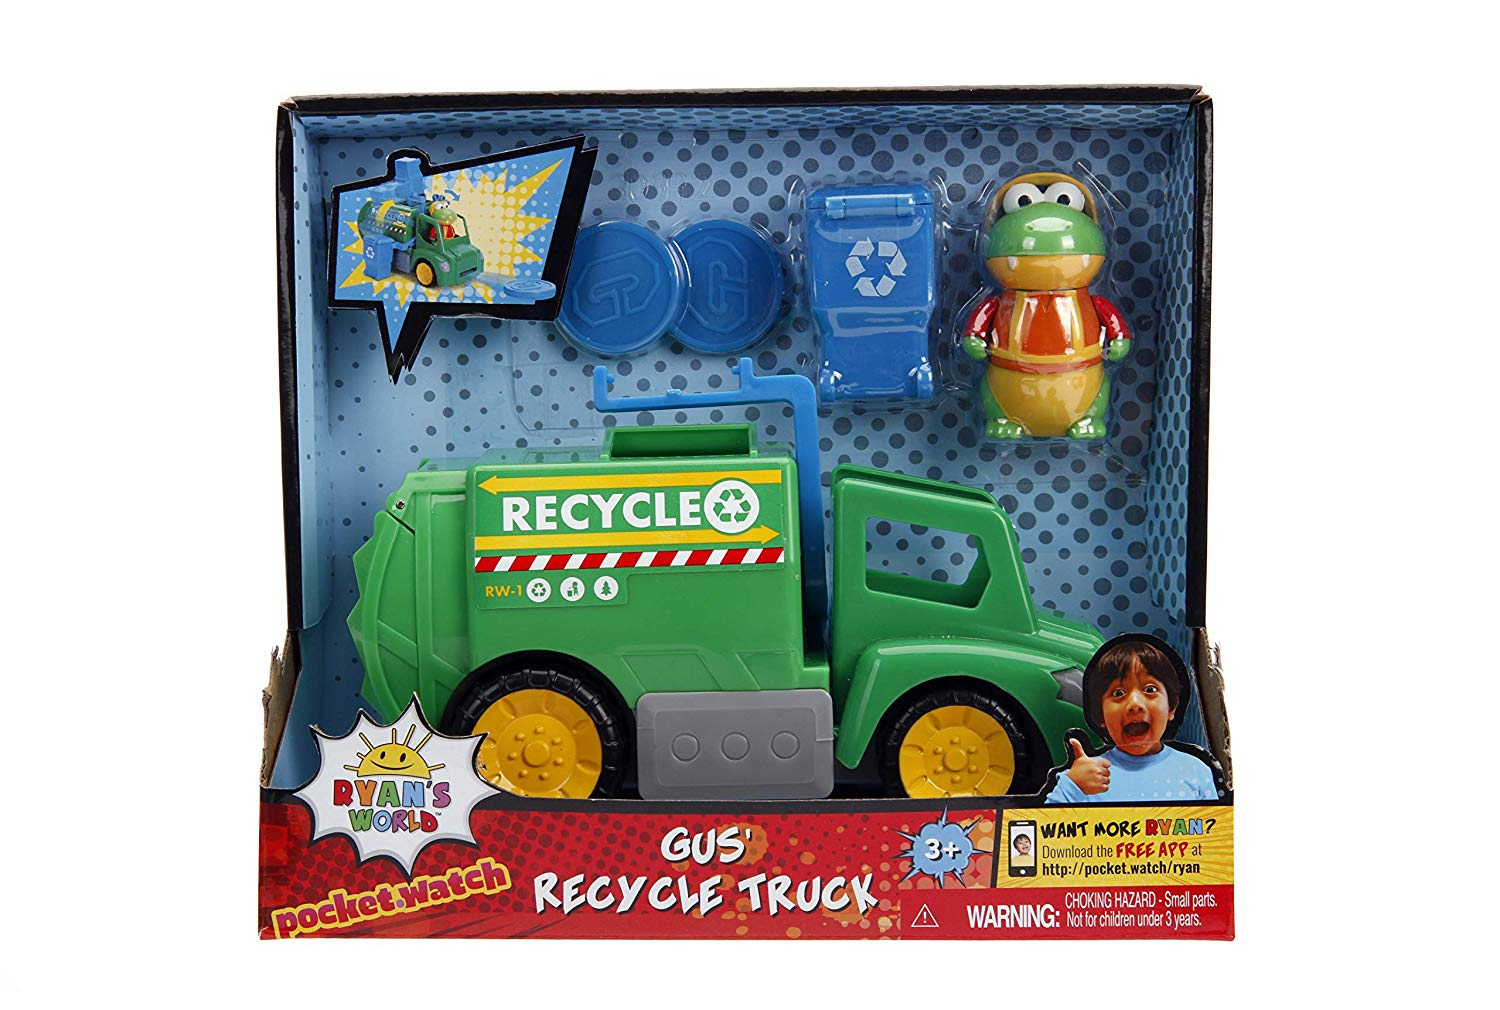 Ryan's World Recycling Truck with Gus The Gummy Gator Figure